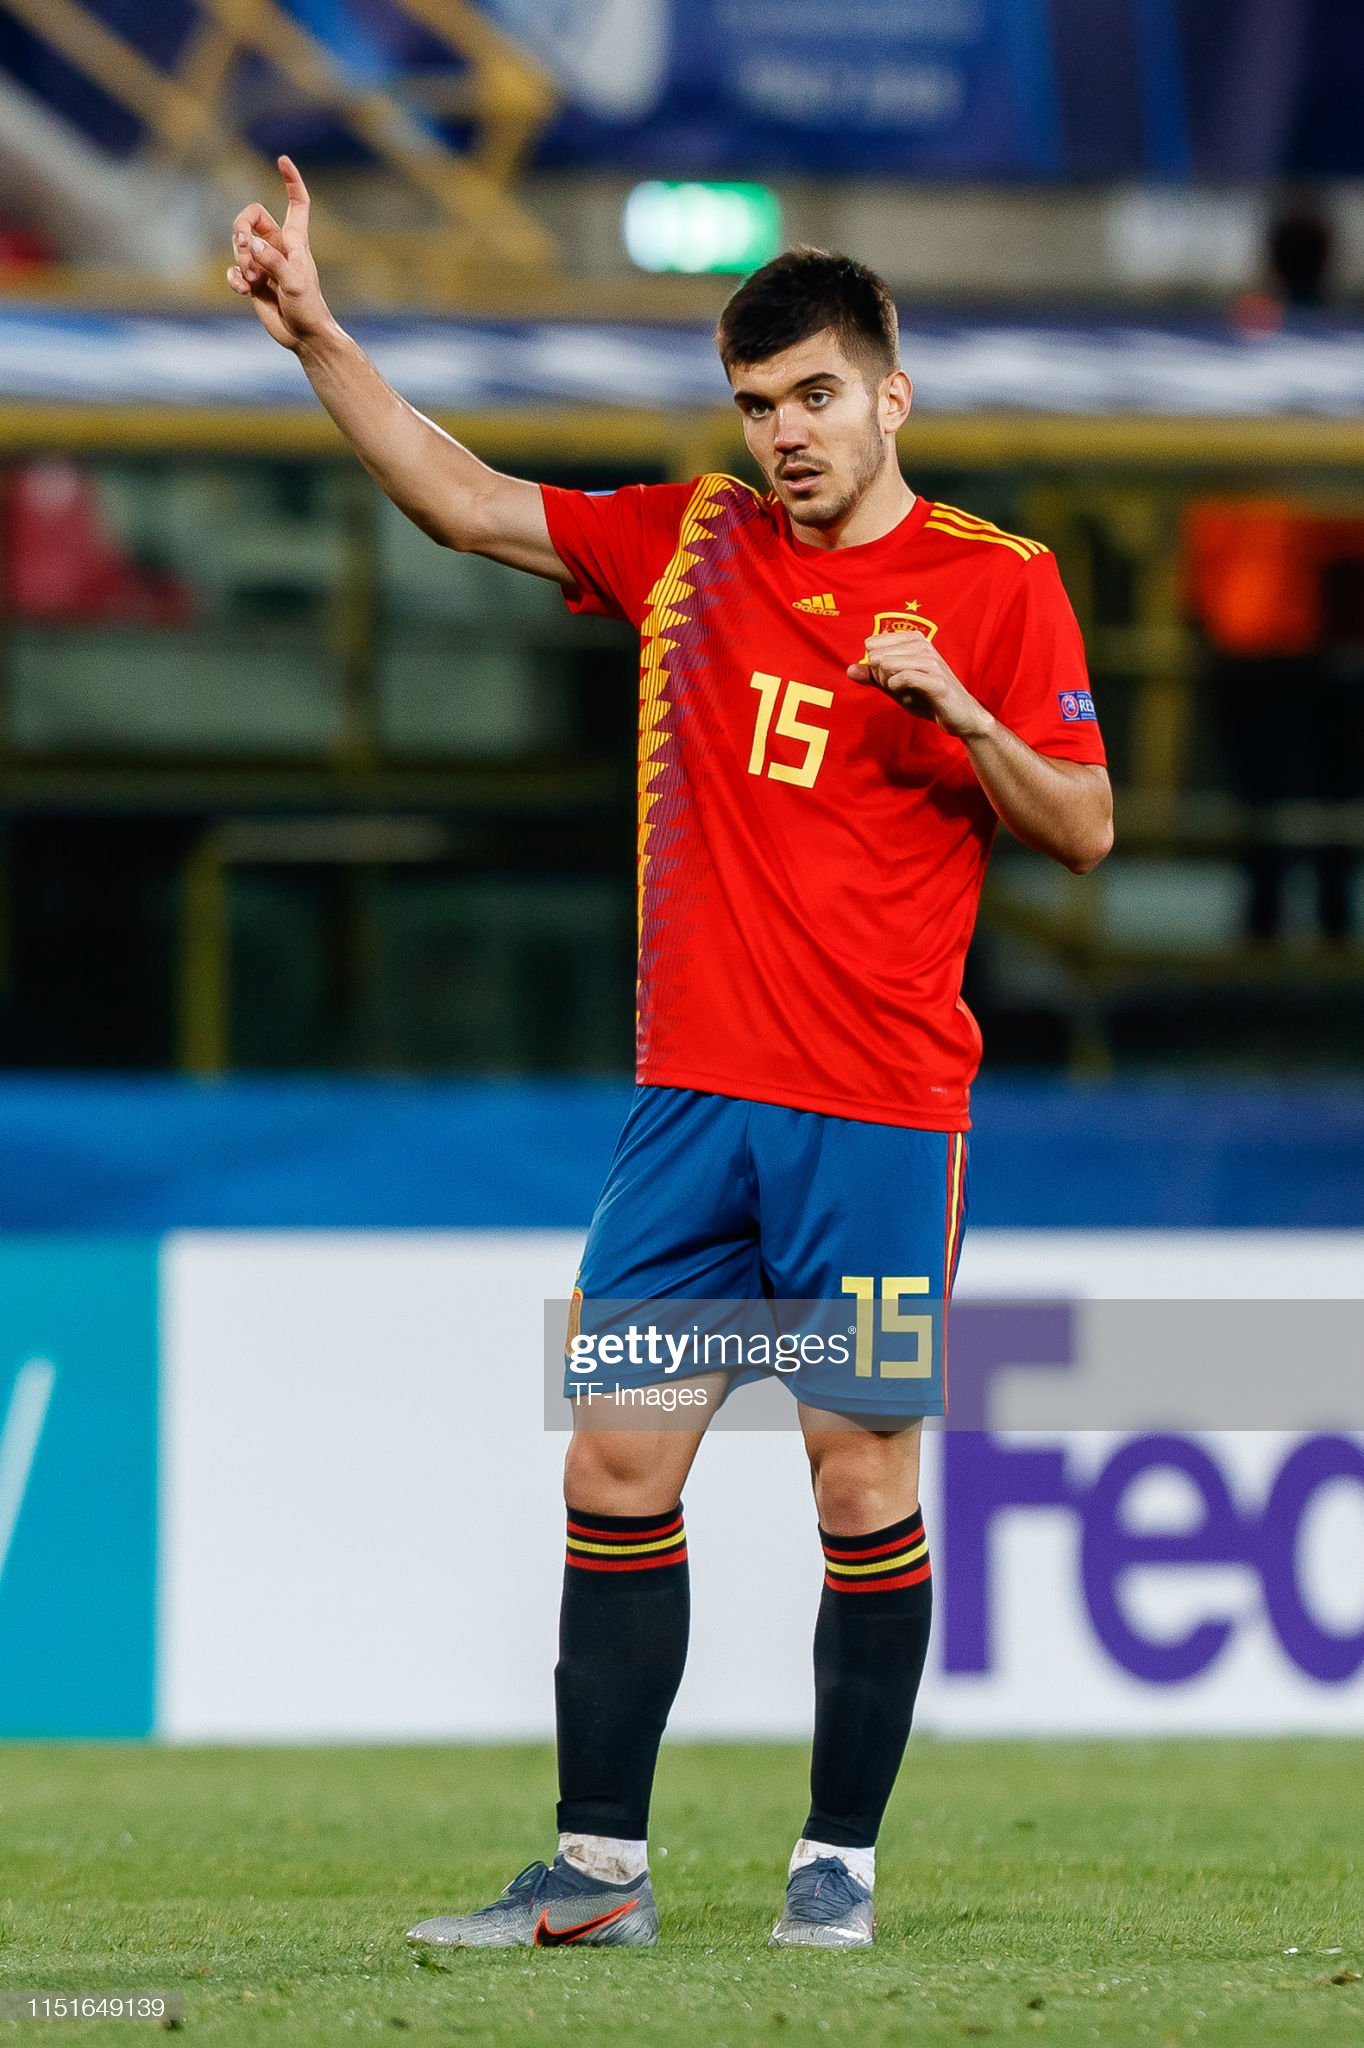 ¿Cuánto mide Martín Aguirregabiria? - Altura Martin-aguirregabiria-of-spain-gestures-during-the-2019-uefa-u21-a-picture-id1151649139?s=2048x2048